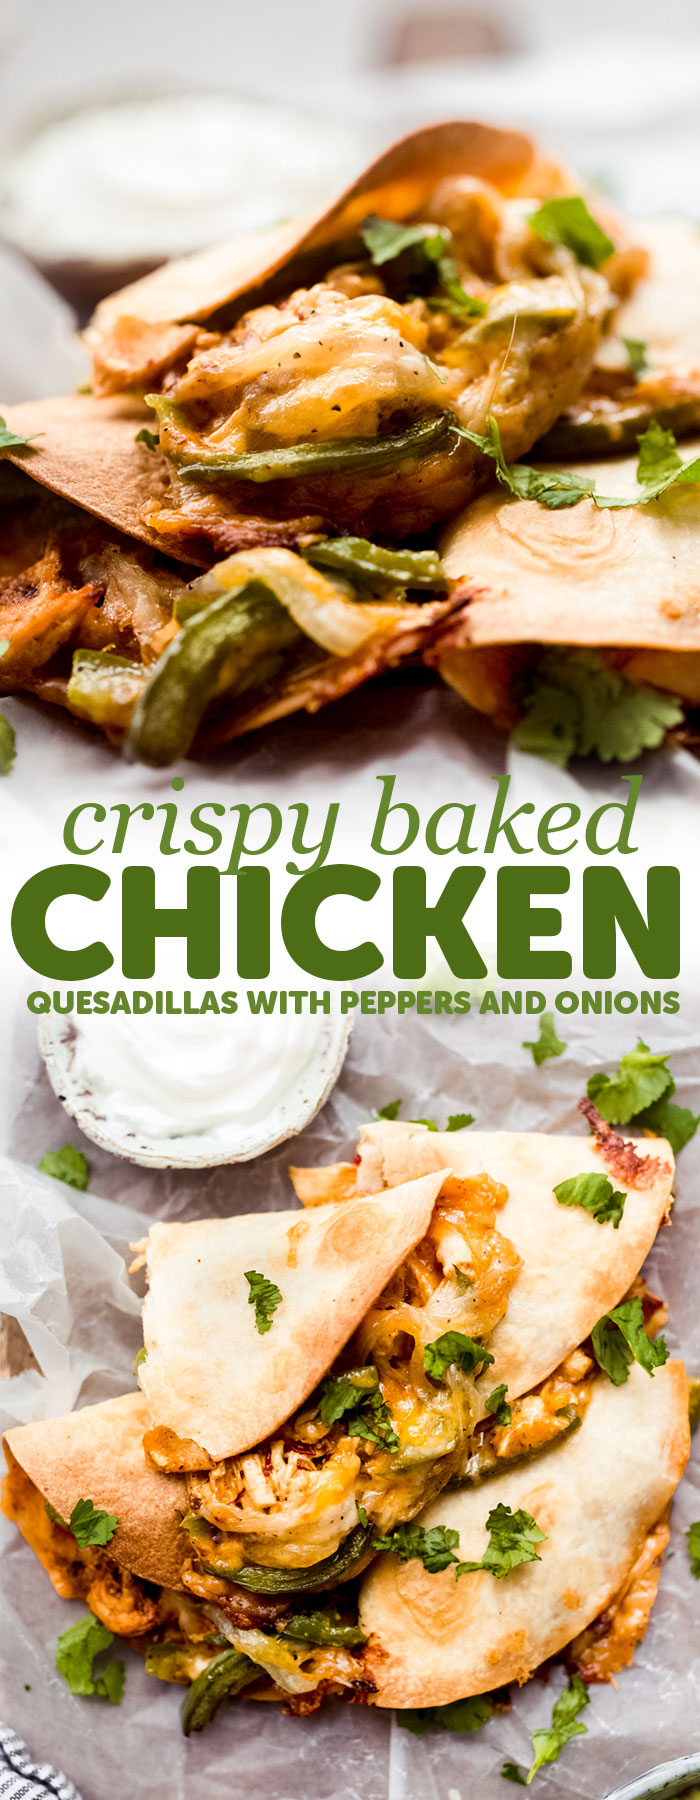 Crispy Baked Chicken Quesadillas - loaded with peppers, onions, creamy chicken and baked until they're crispy and melty! #bakedquesadillas #chickenquesadillas #quesadillas #bakedchickenquesadillas #cincodemayorecipes #superbowlrecipes | Littlespicejar.com